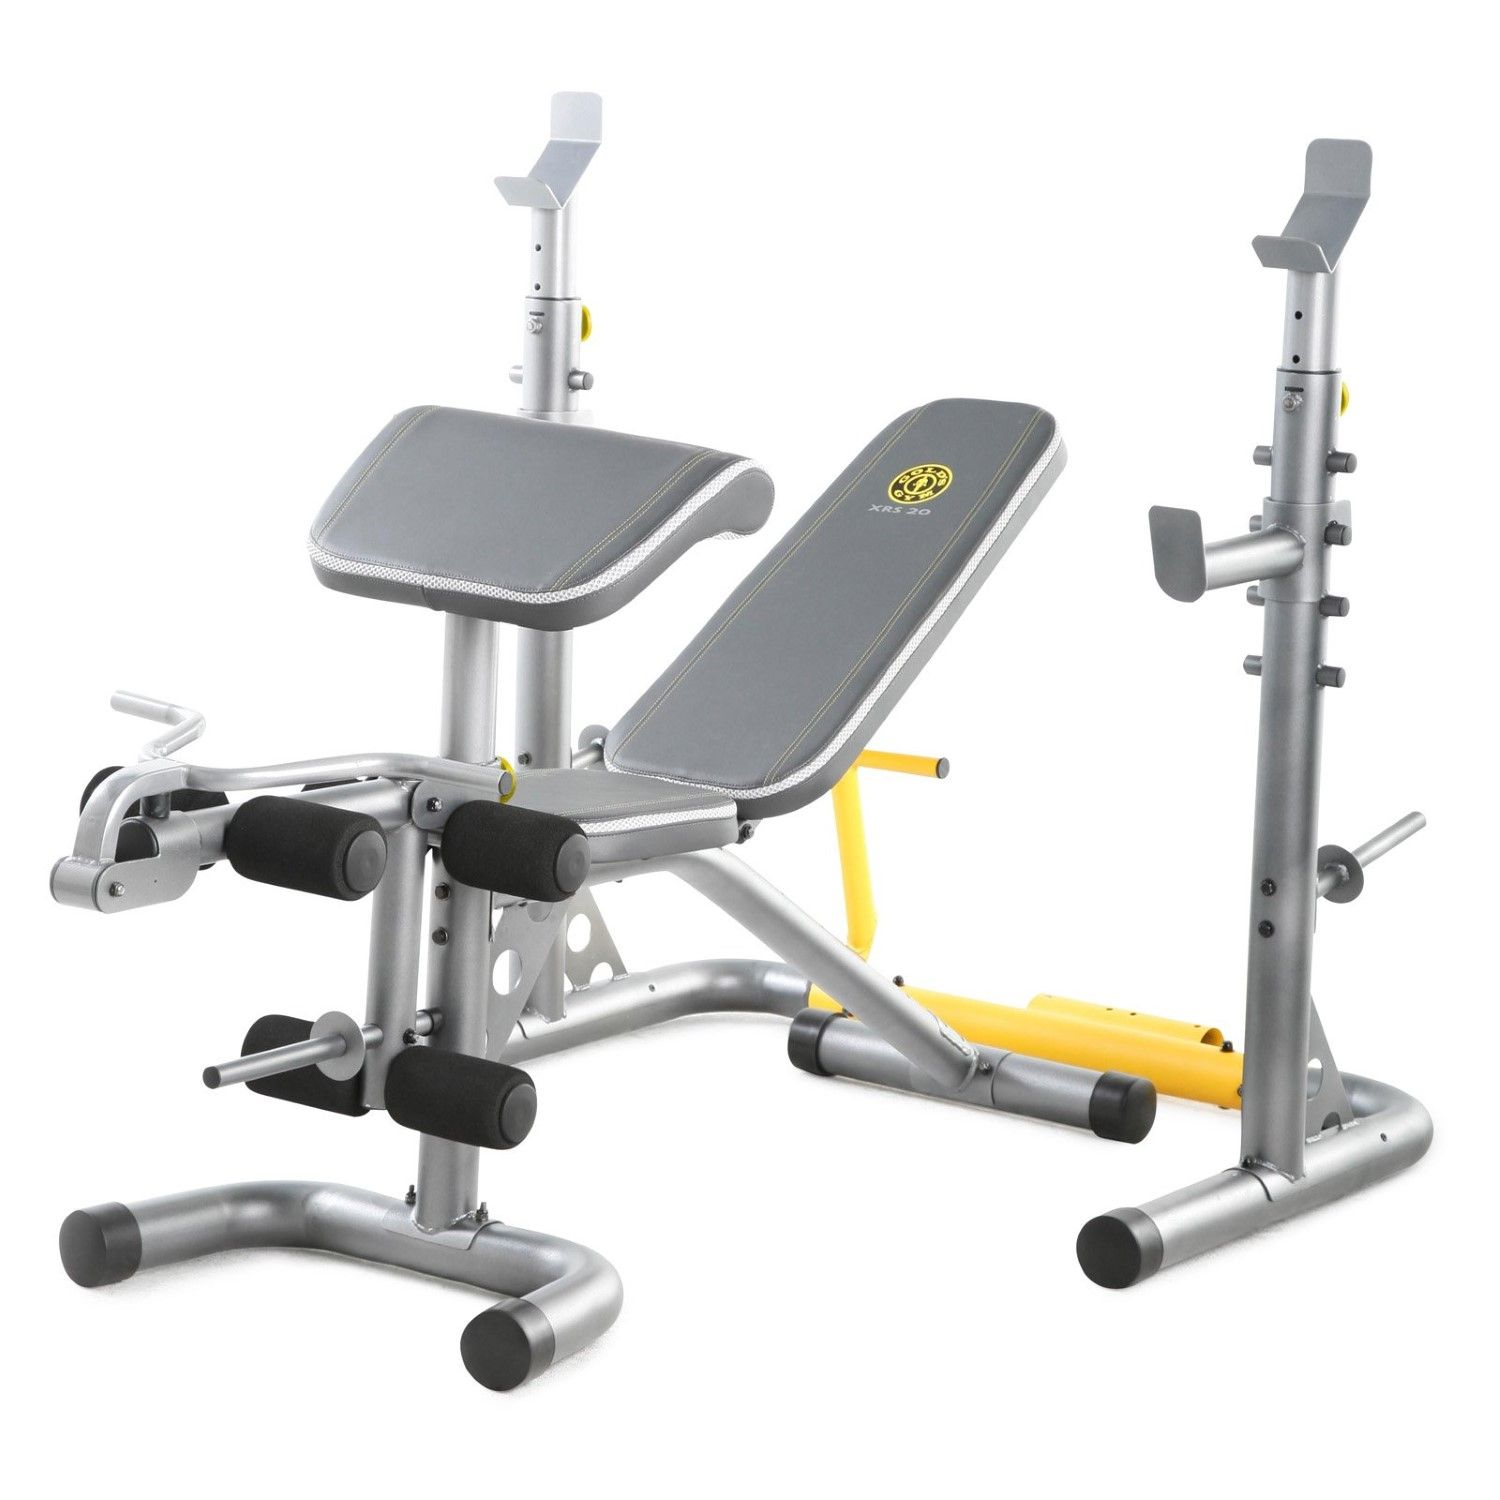 Whether You Re A Seasoned Fitness Enthusiast Or A Beginner The Golds Gym Xrs20 Weight Bench Is The Perfect Multi Functi Weight Benches Golds Gym Bench Workout